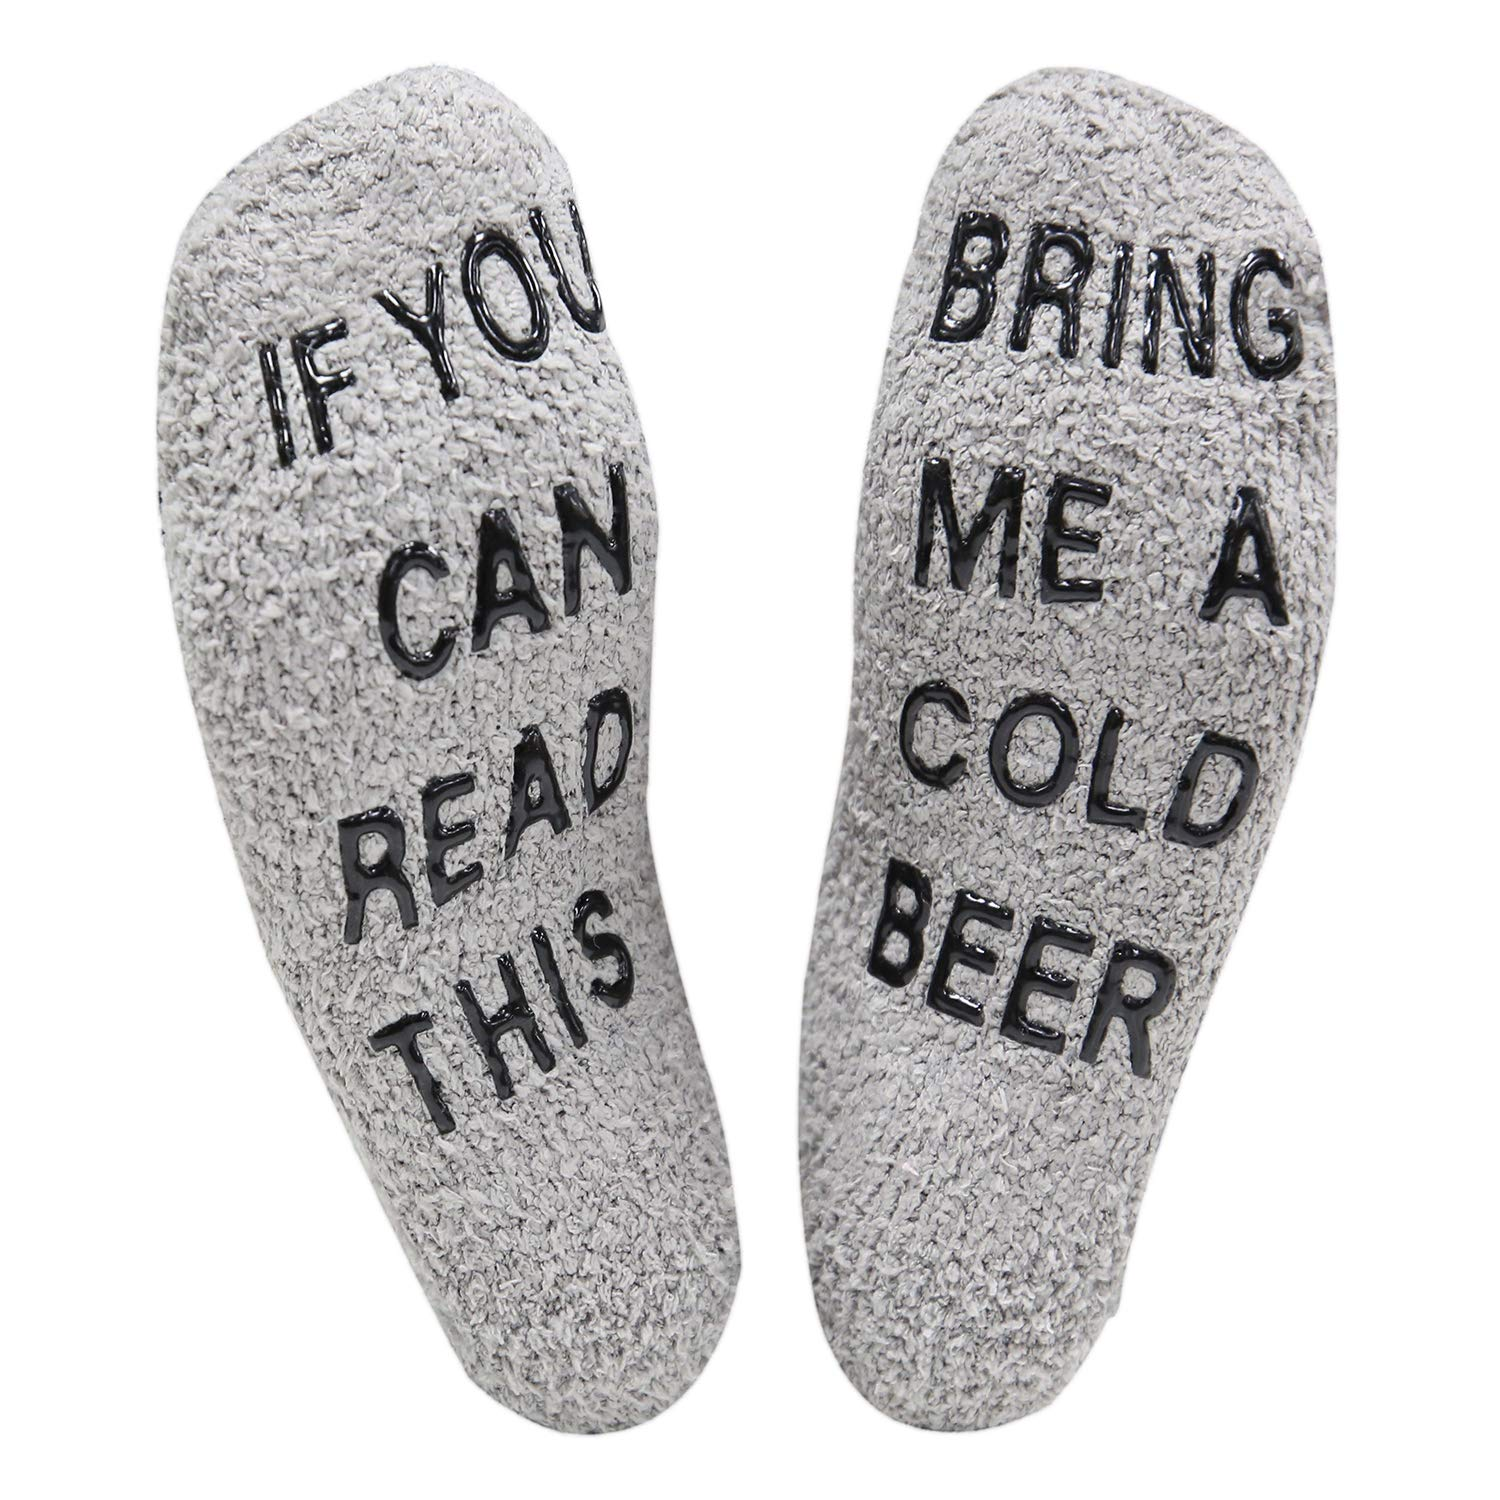 Happypop Slipper Socks If You Can Read This Fuzzy Crew Winter Warm Socks Bring Me Beer Thermal Socks For Men Women Hollowen Christmas Birthday housewarming Gift